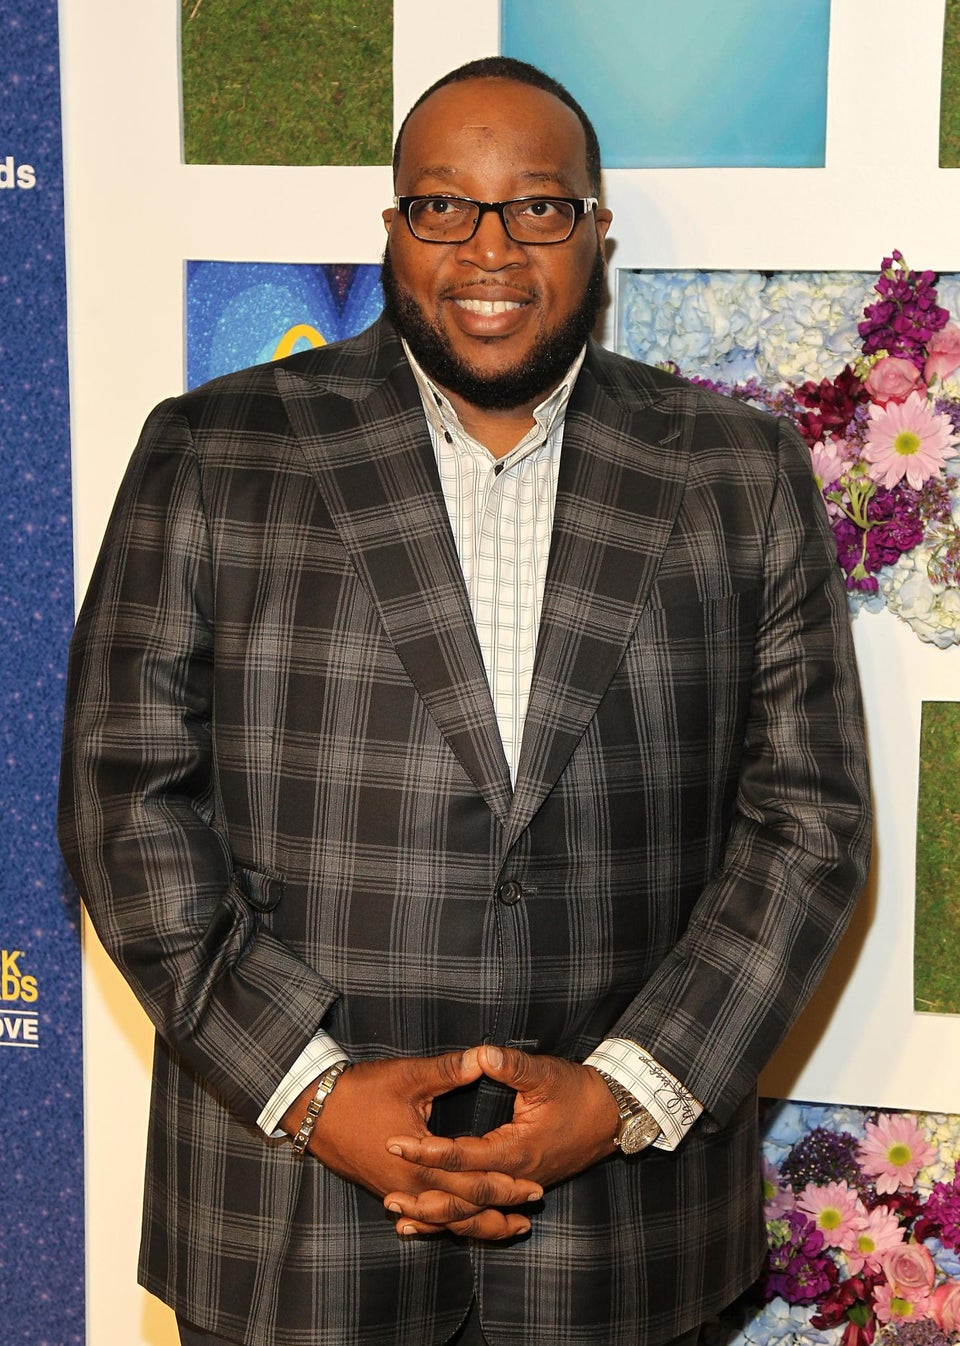 ESSENCE Sits Down with Marvin Sapp to Discuss His 10 Solo Projects, Dating Life and More